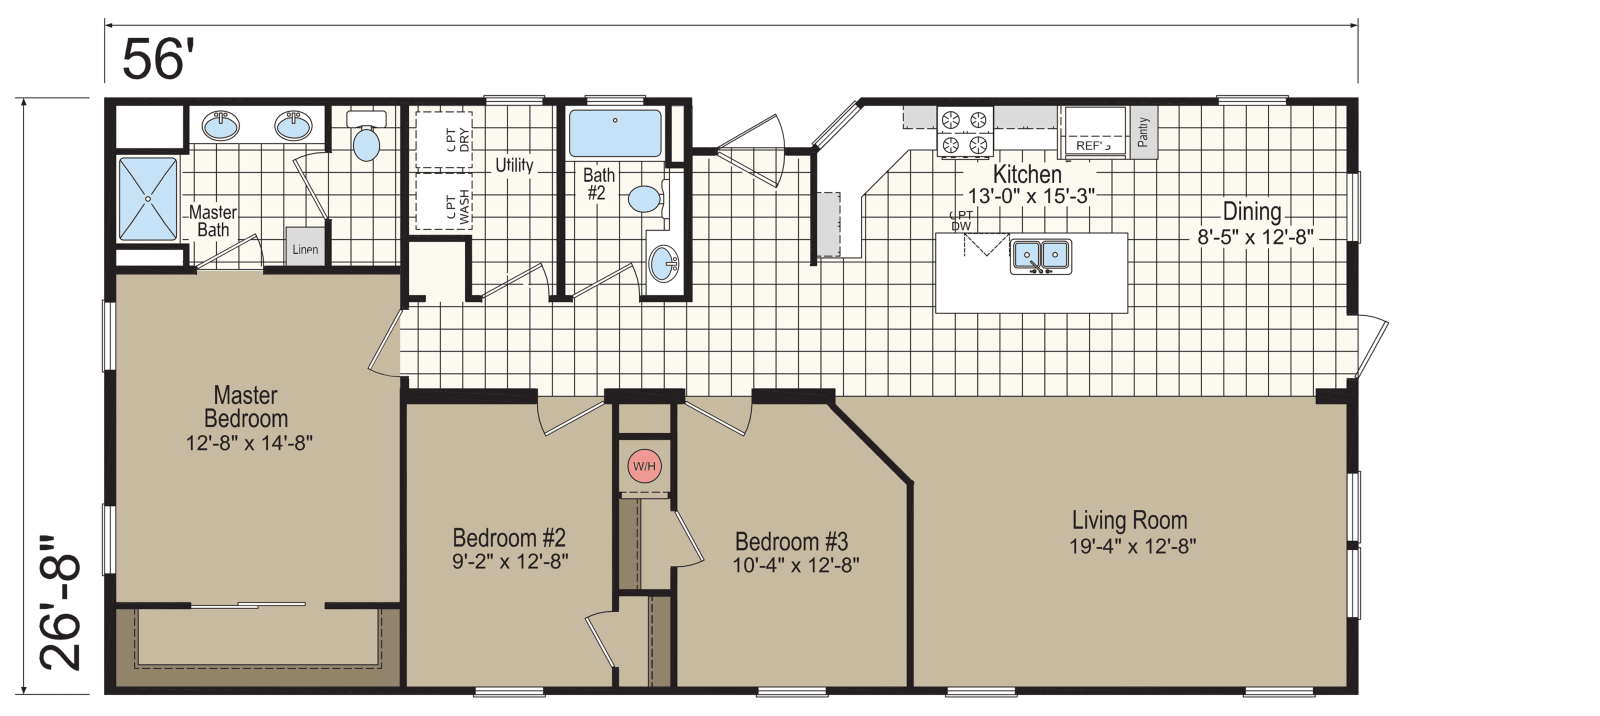 Drawing bathroom section. Homc c built by